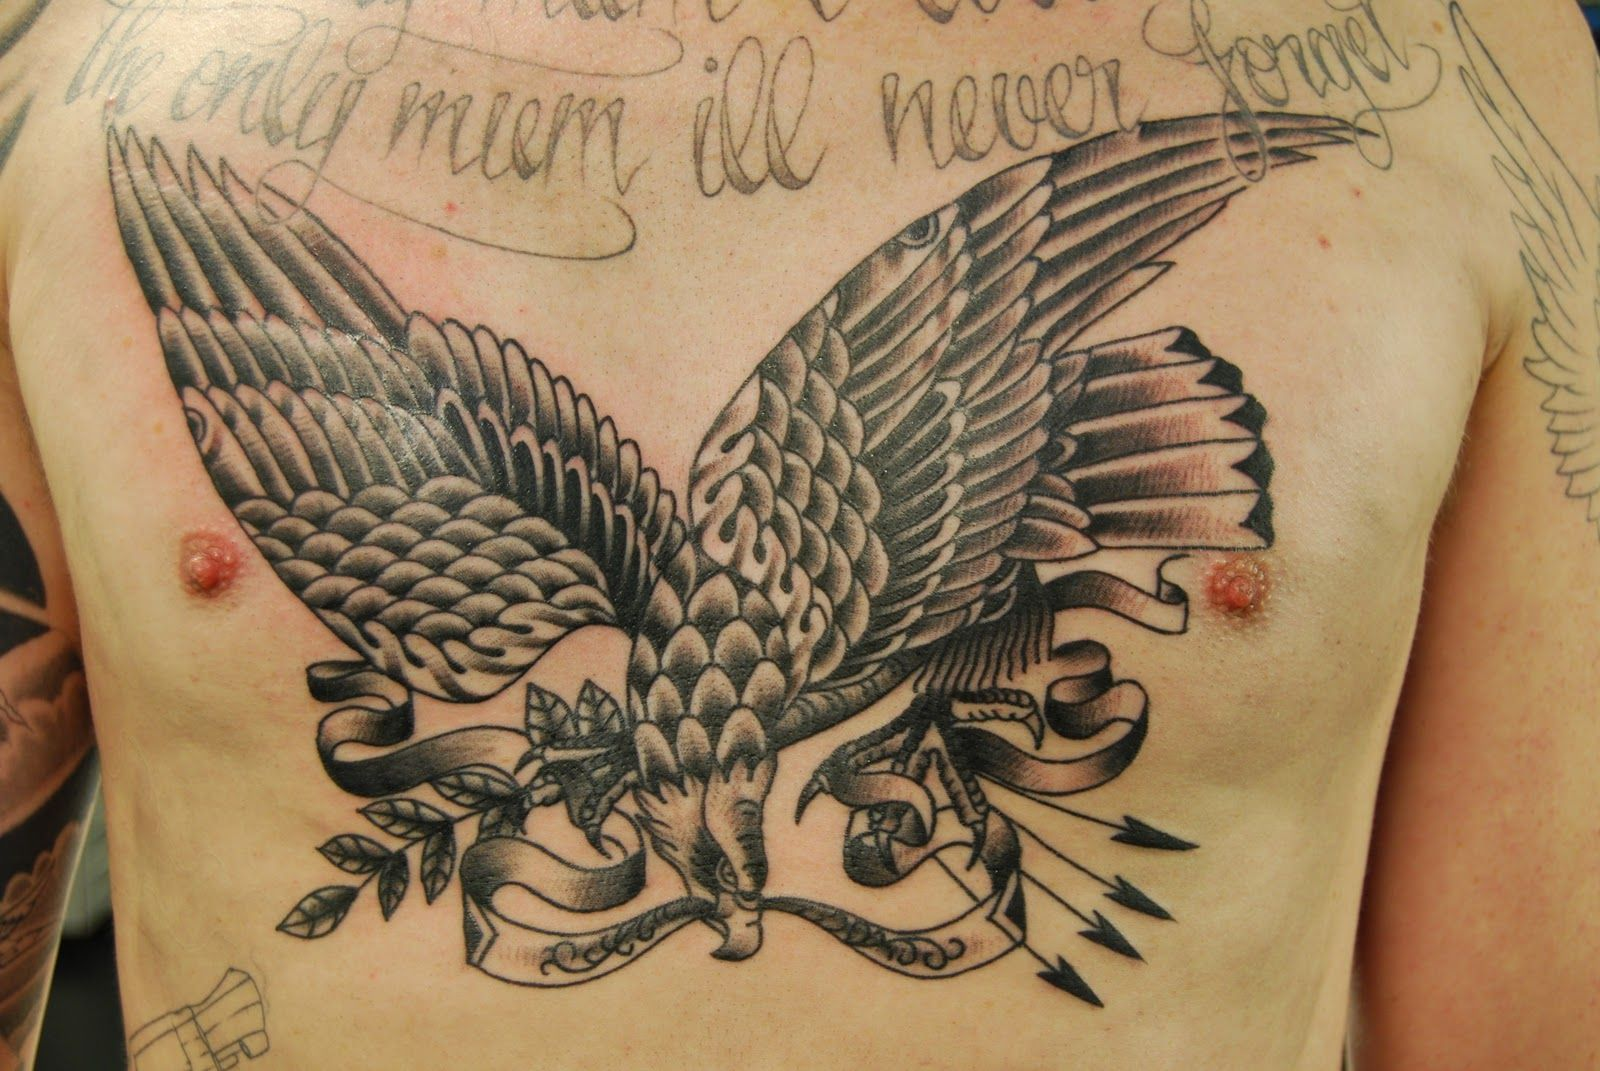 American eagle tattoos high quality photos and flash - We Have Brought A Collection Of 30 Amazing Eagle Tattoo Designs Hope You Like These Eagle Tattoo Designs And Have Them On Your Body To Represent Your Power